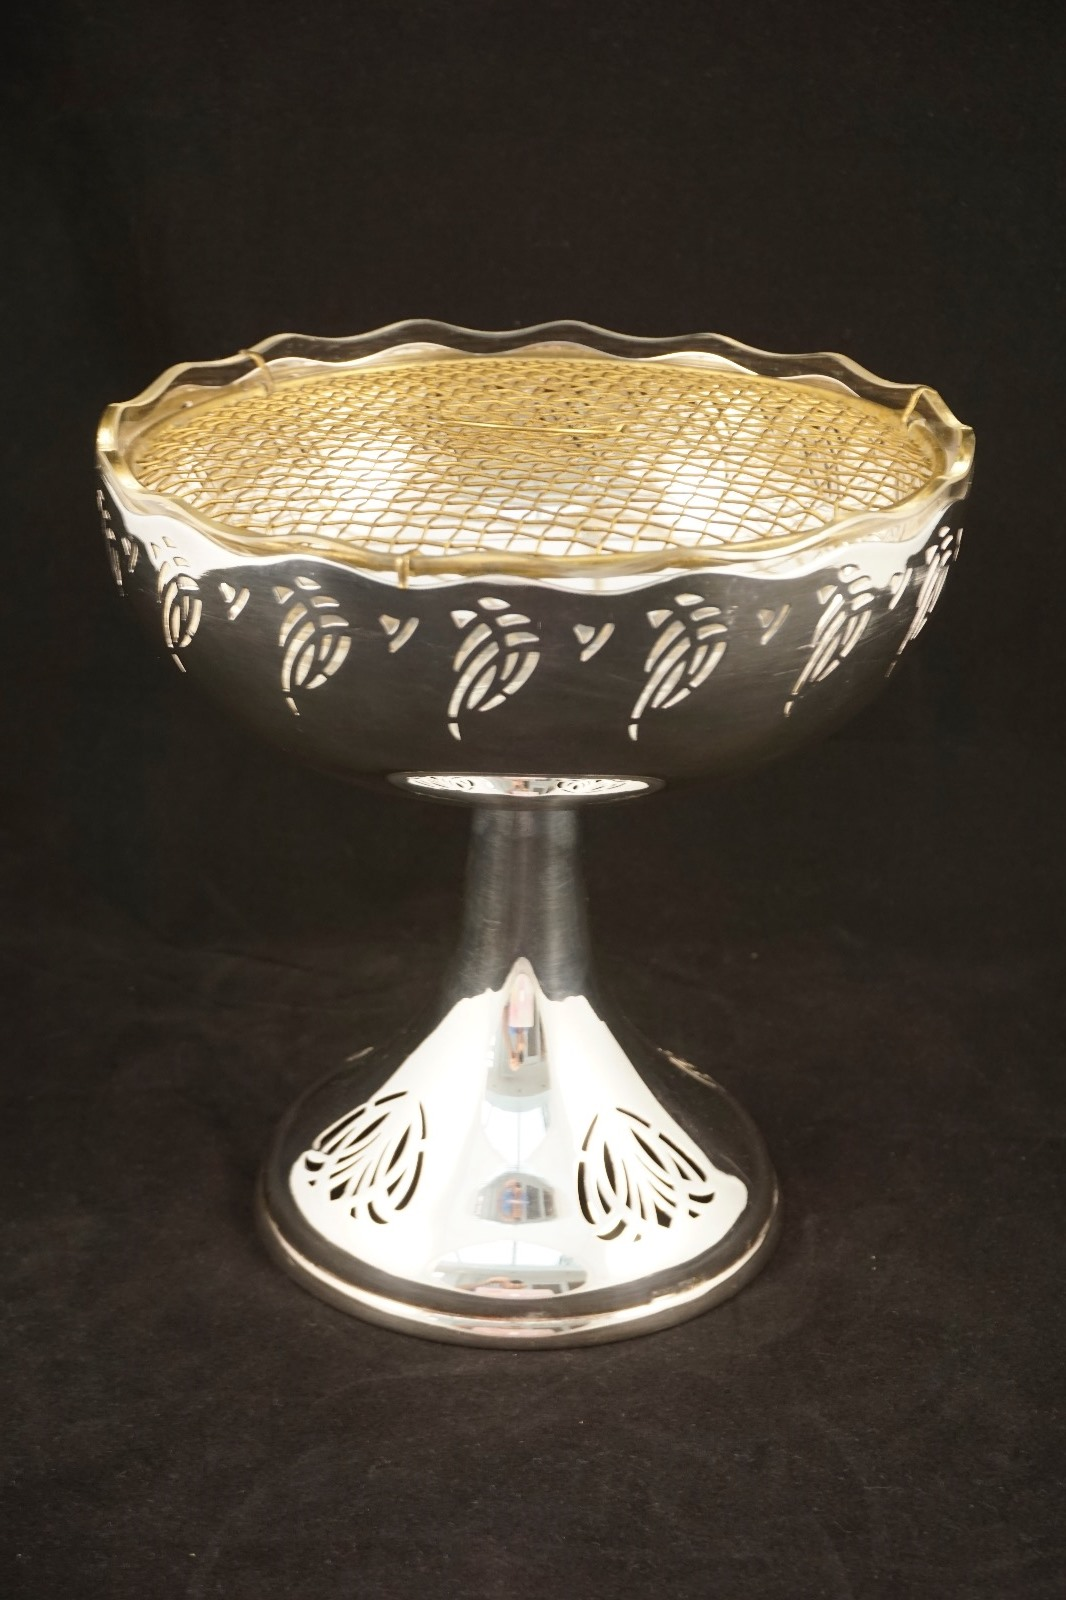 Tazza or raised bowl with a pierced fretwork design. 1910.